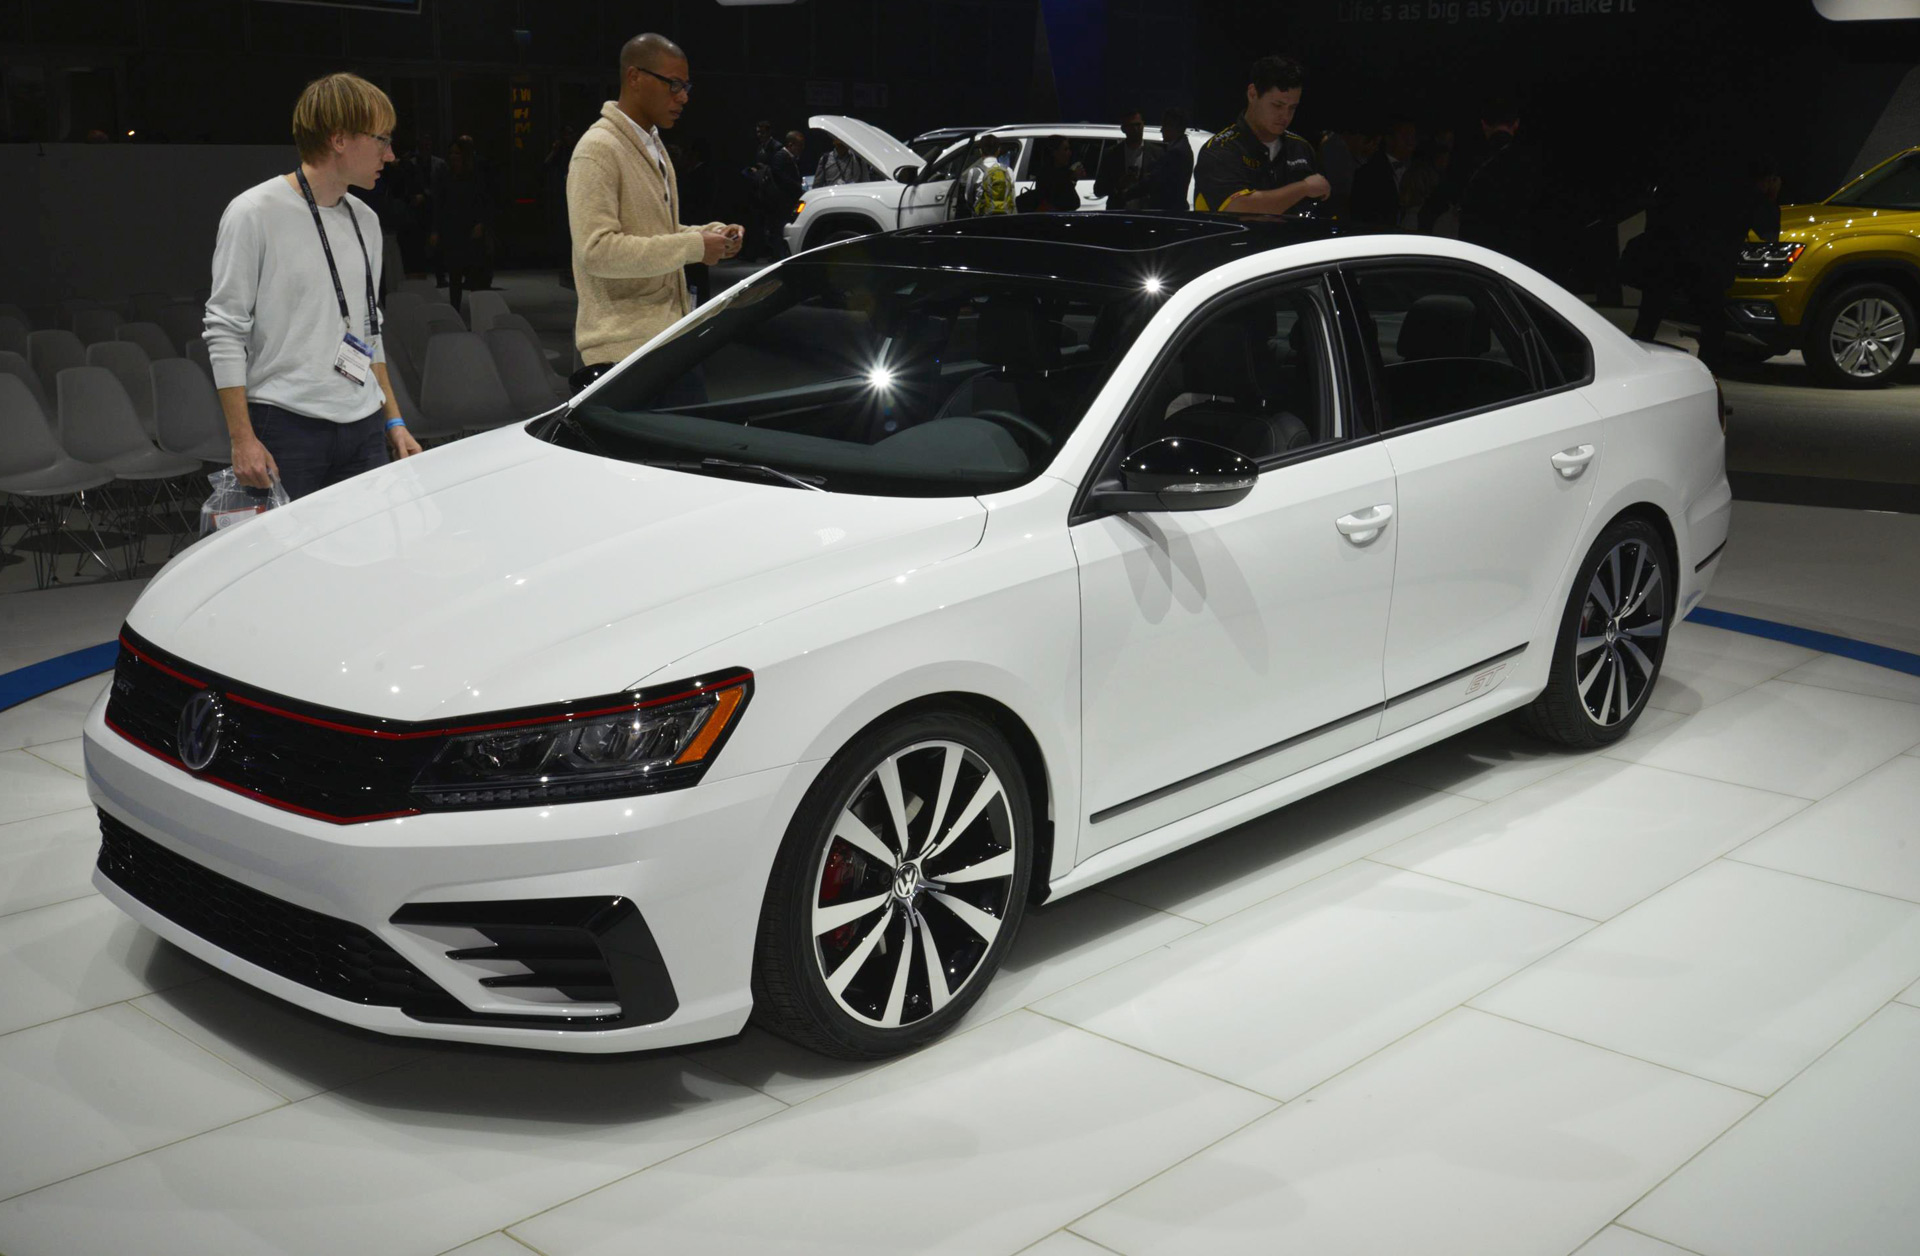 Vw Passat Gt Concept Brings Near R Potential To Family Sedan